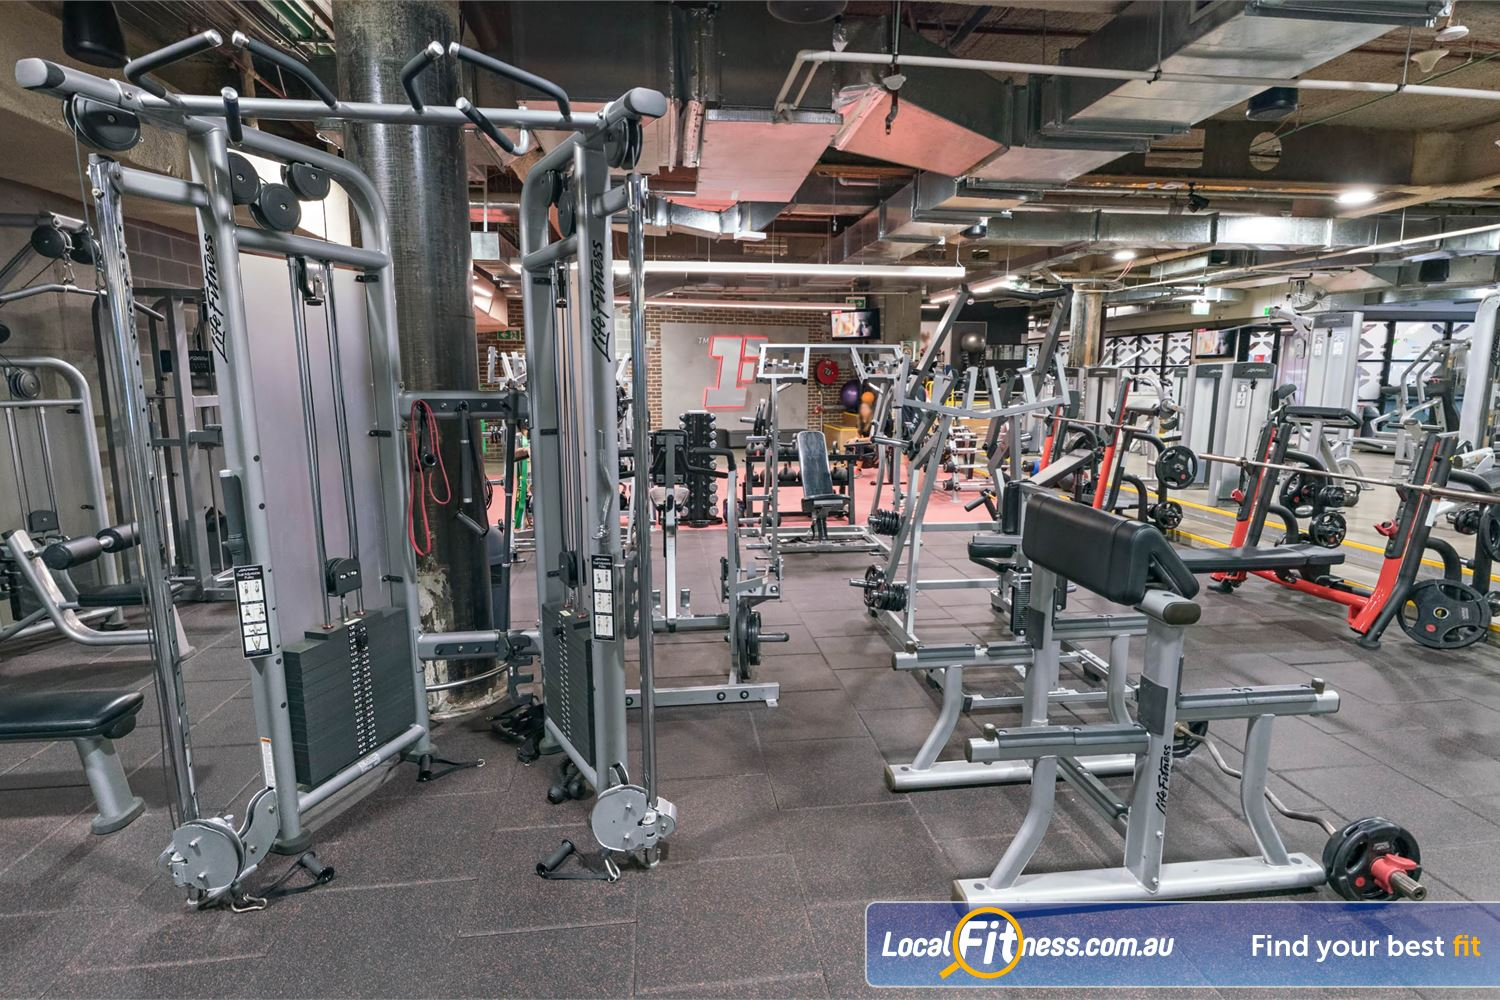 Fitness First Platinum Shelley St Near World Square Our Sydney gym includes easy to use pin and plate loading machines.